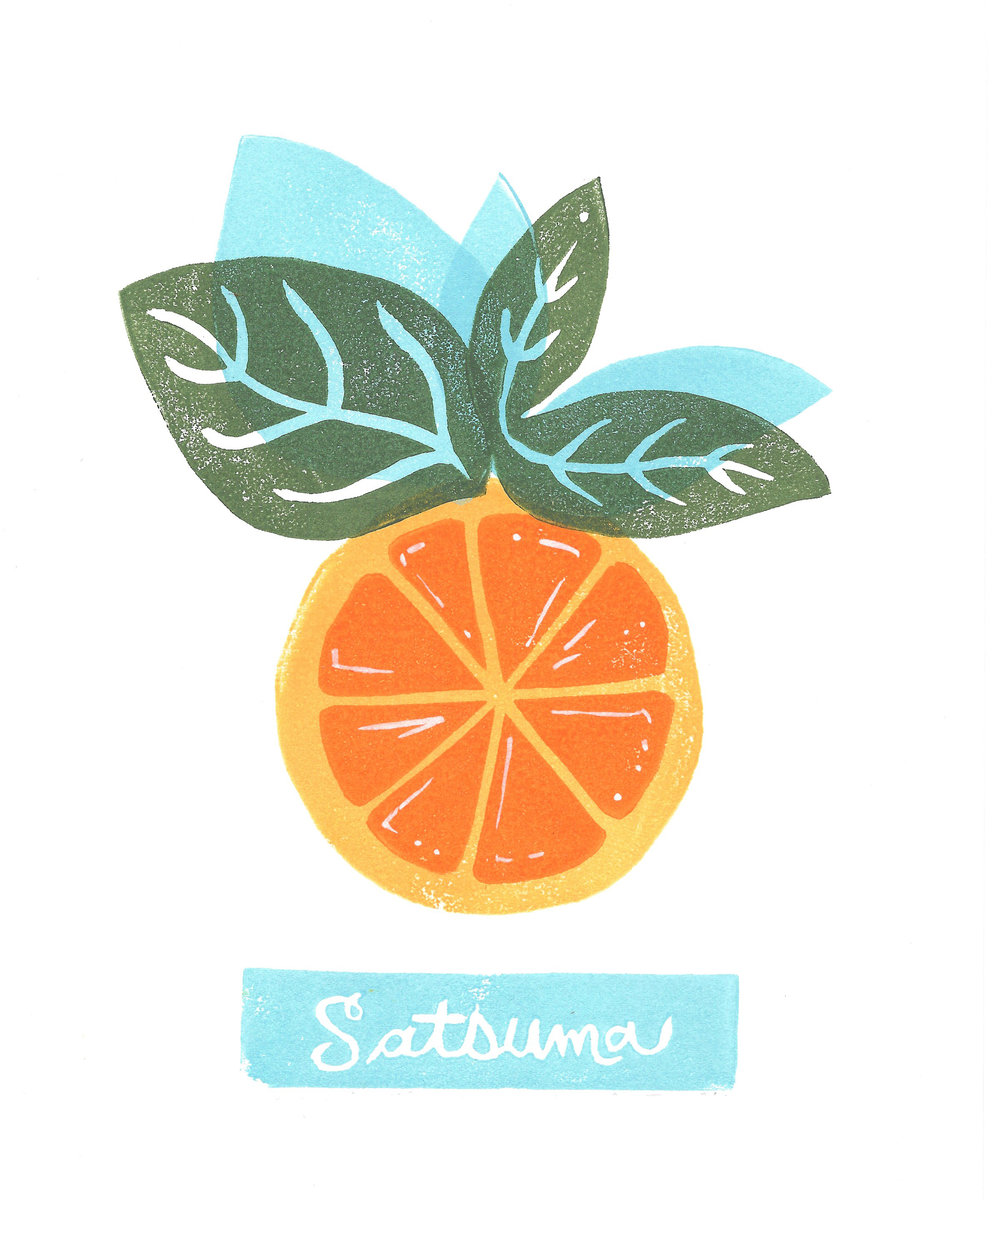 satsuma for print.jpg